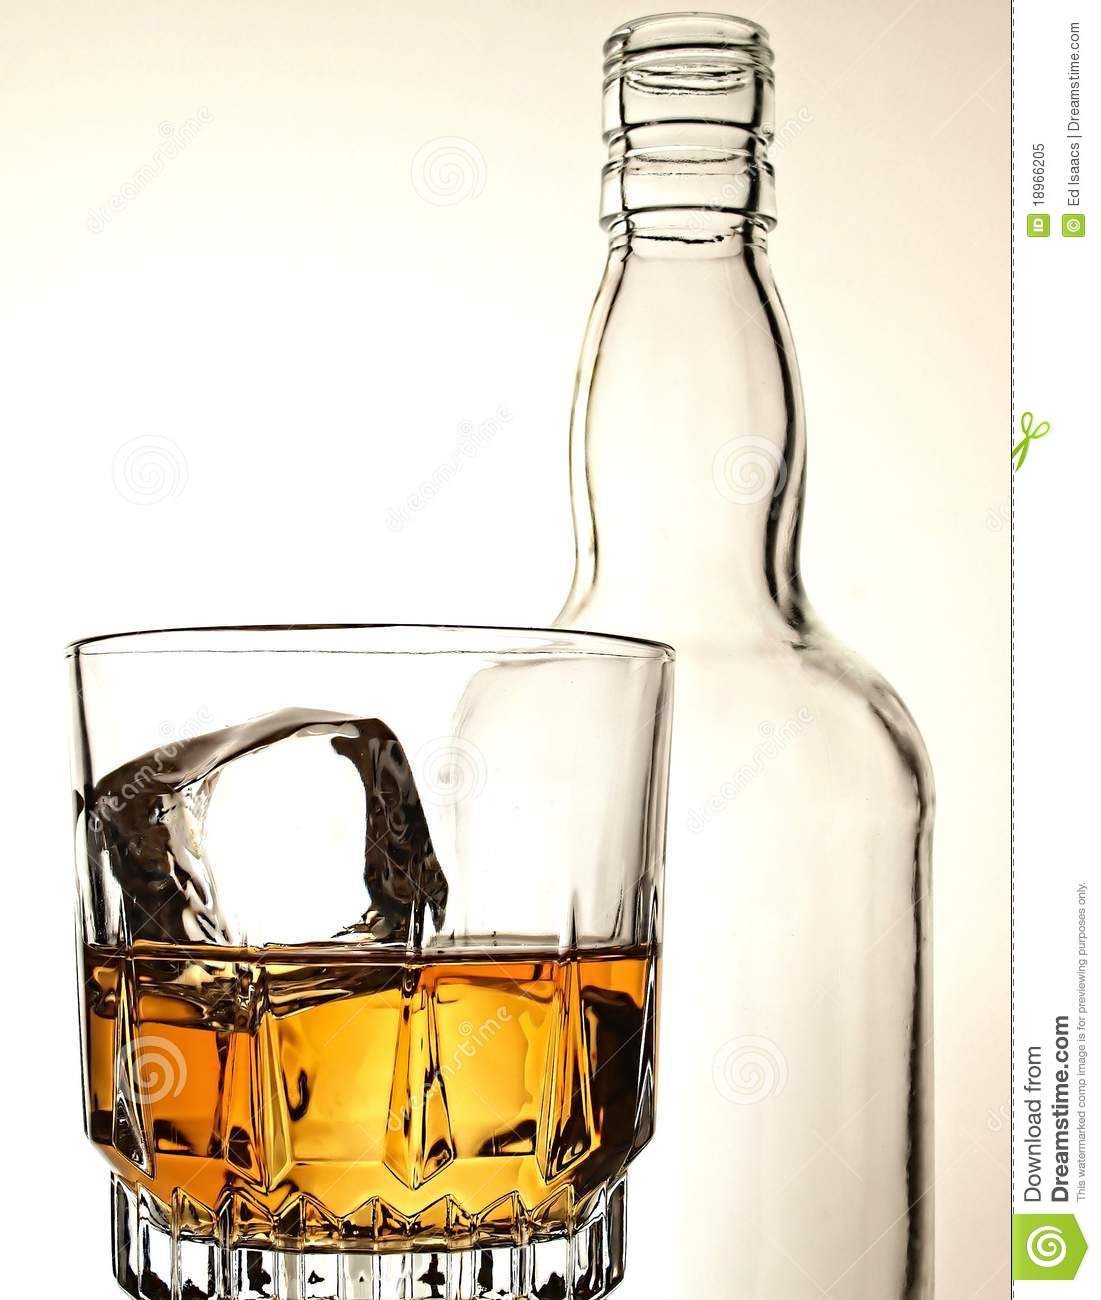 Whiskey Bottle & Glass Abstract Stock Image - Image of ... |Whisky Bottle With Glass